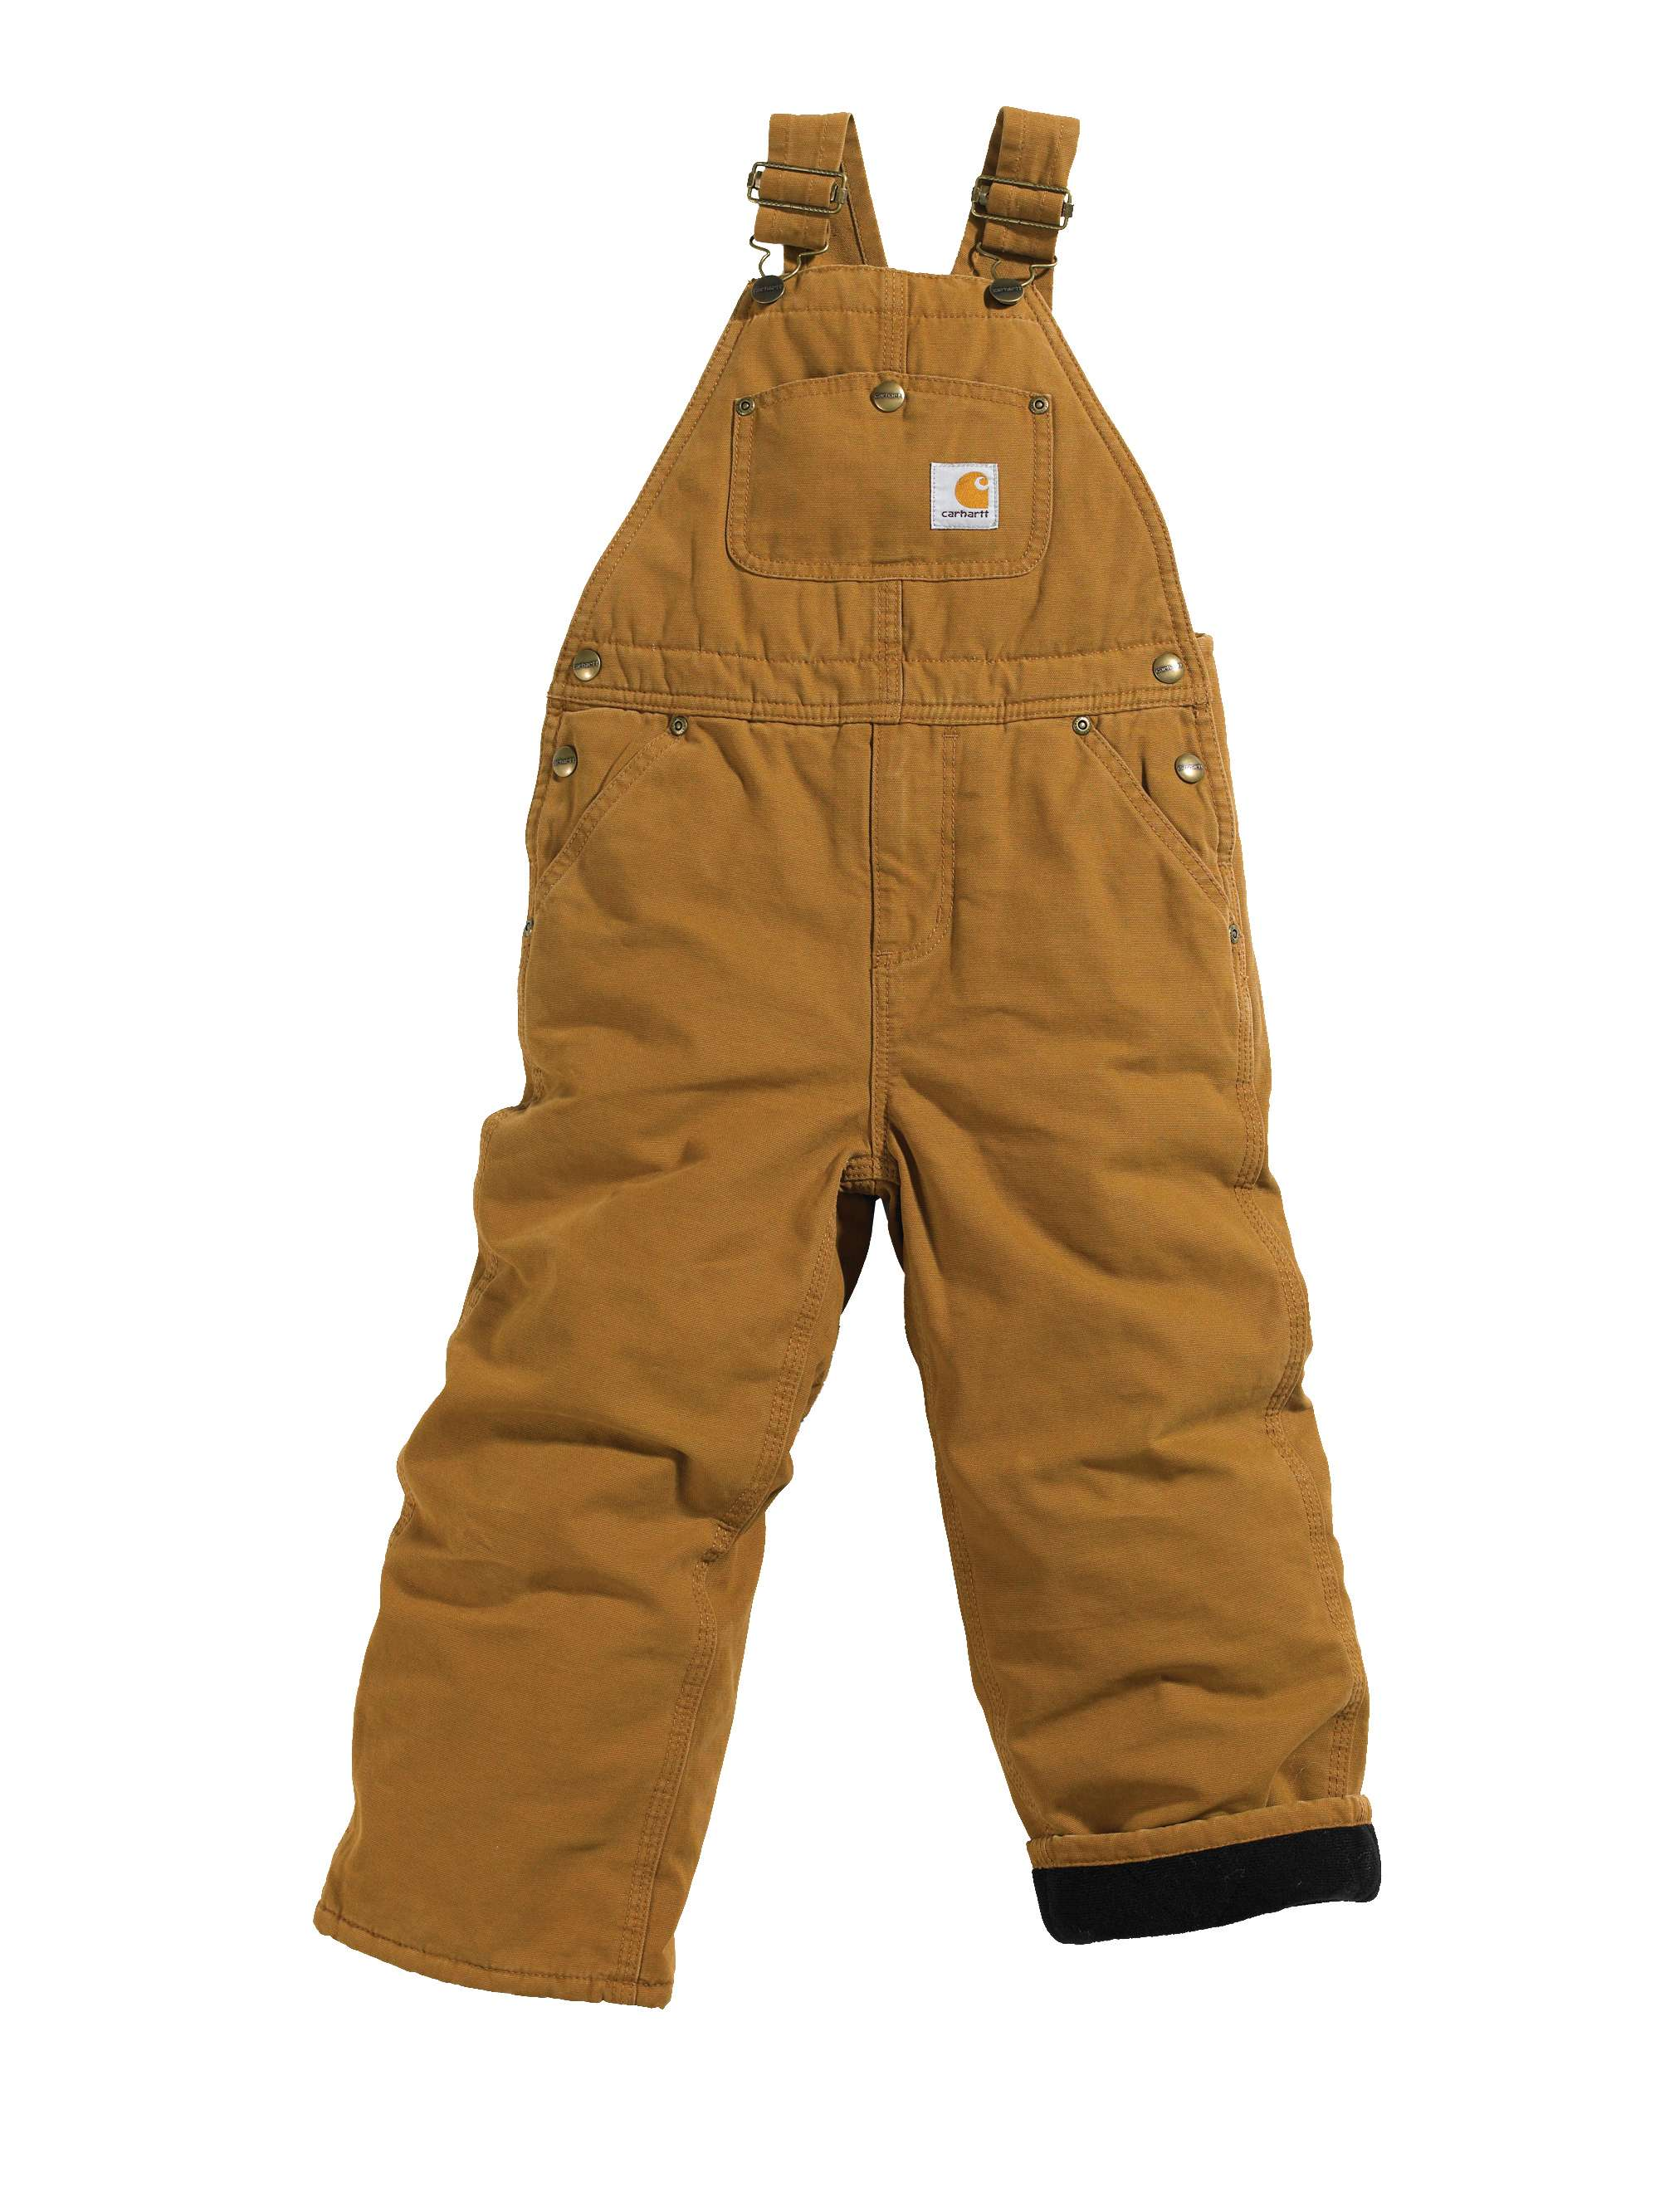 Carhartt Canvas Overall Quilt-Lined Sizes 4-7